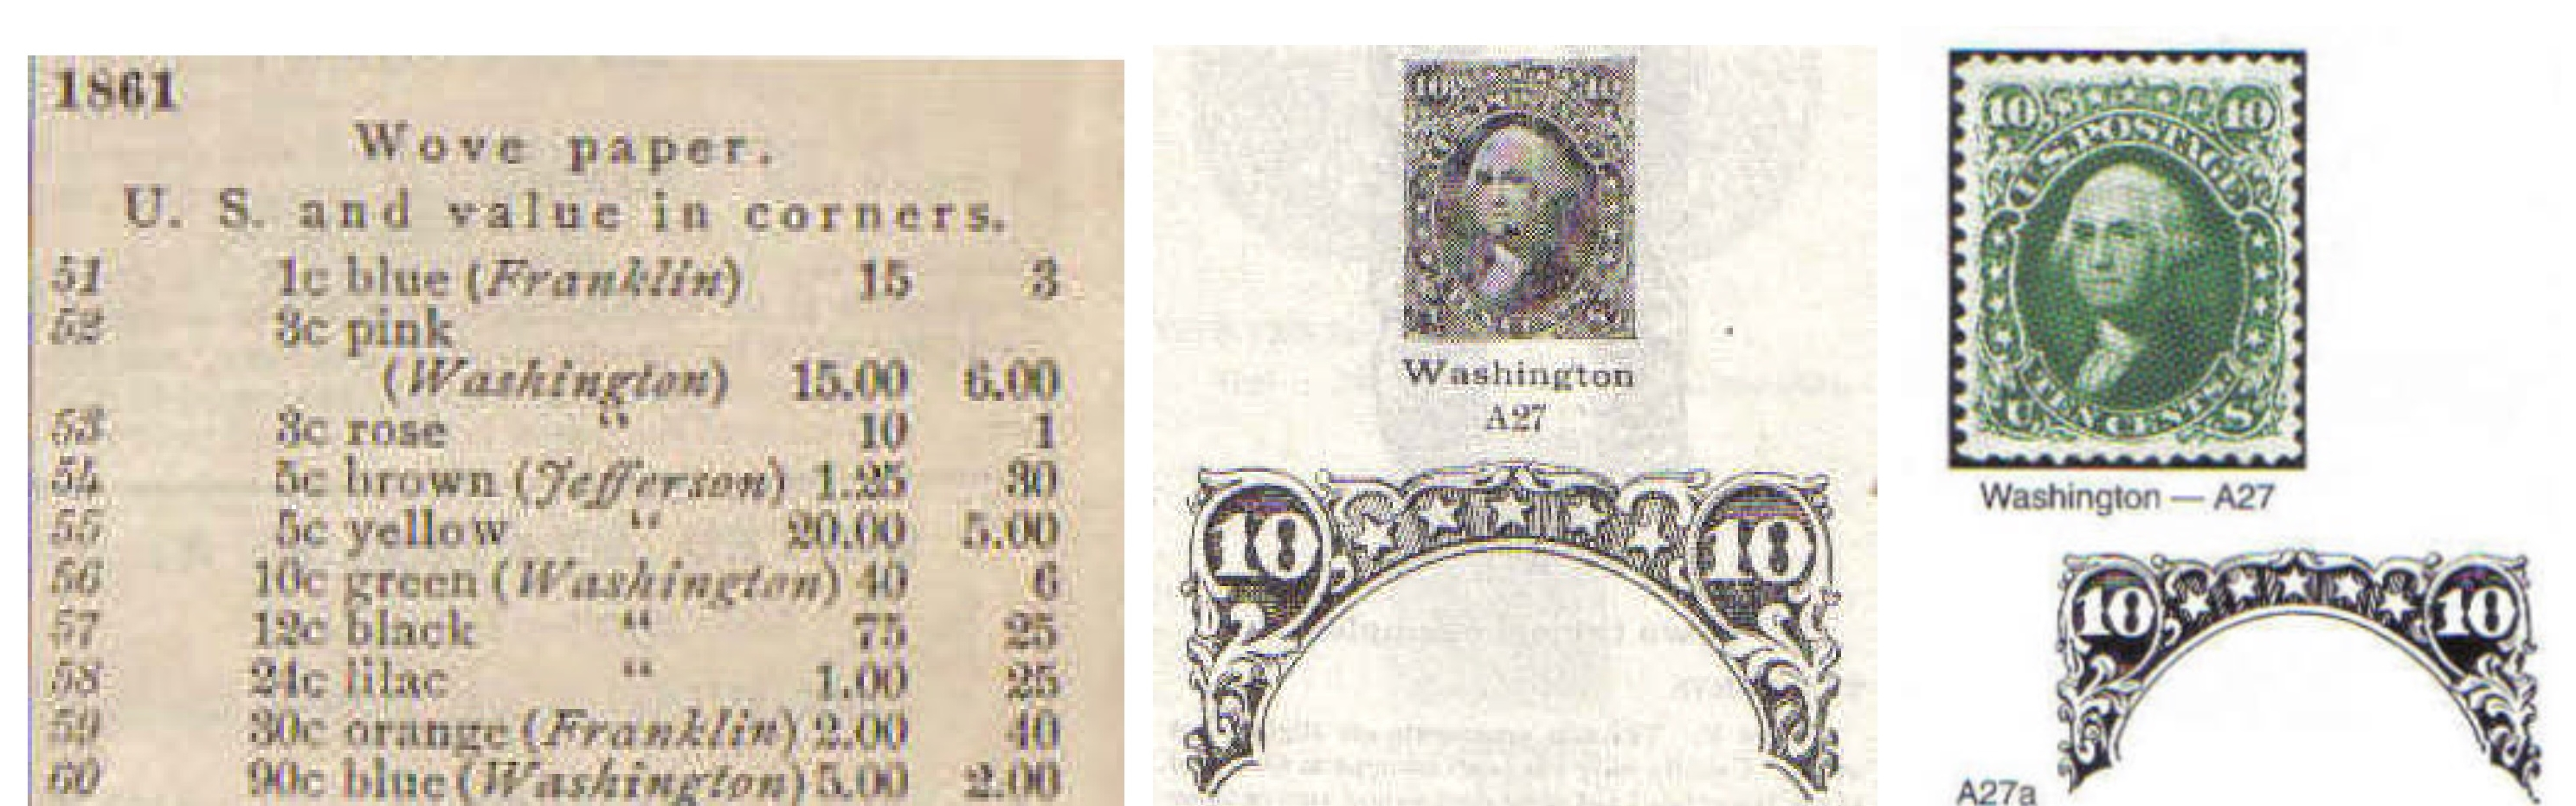 Scott catalogue listings for the same stamp (Scott #68): 1895 edition on the left just lists the descriptions and values (the 10-cent green Washington is here listed as #56); many of the early illustrations were rather poor quality, as seen in the 1939 edition in the middle; now, most listings in the Scott catalogue are in full color with improved die-cuts as seen in the 2005 catalogue on the right.